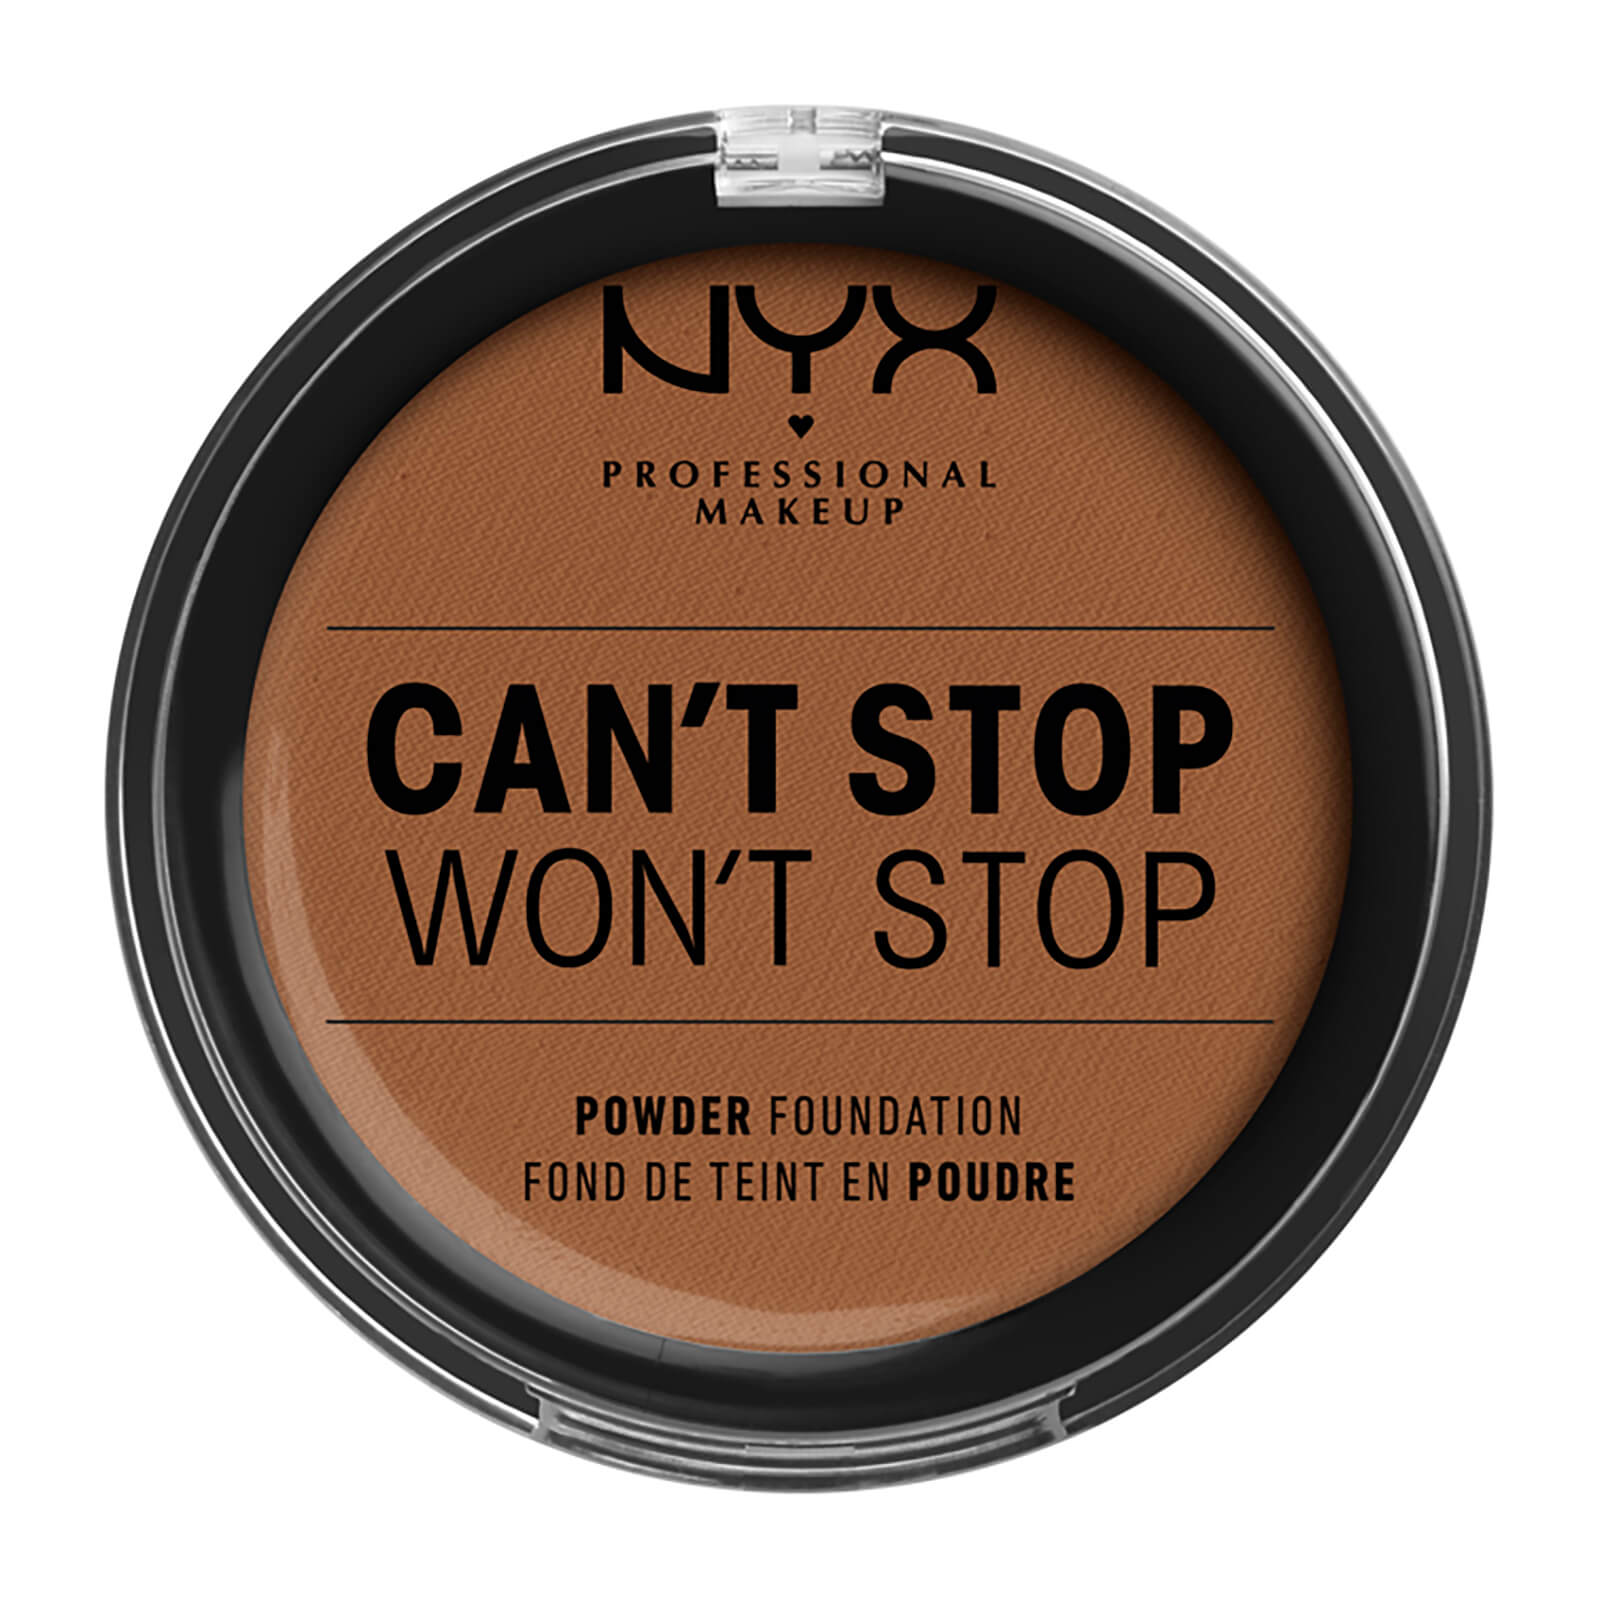 NYX Professional Makeup Can't Stop Won't Stop Powder Foundation (Various Shades) - Cappuccino